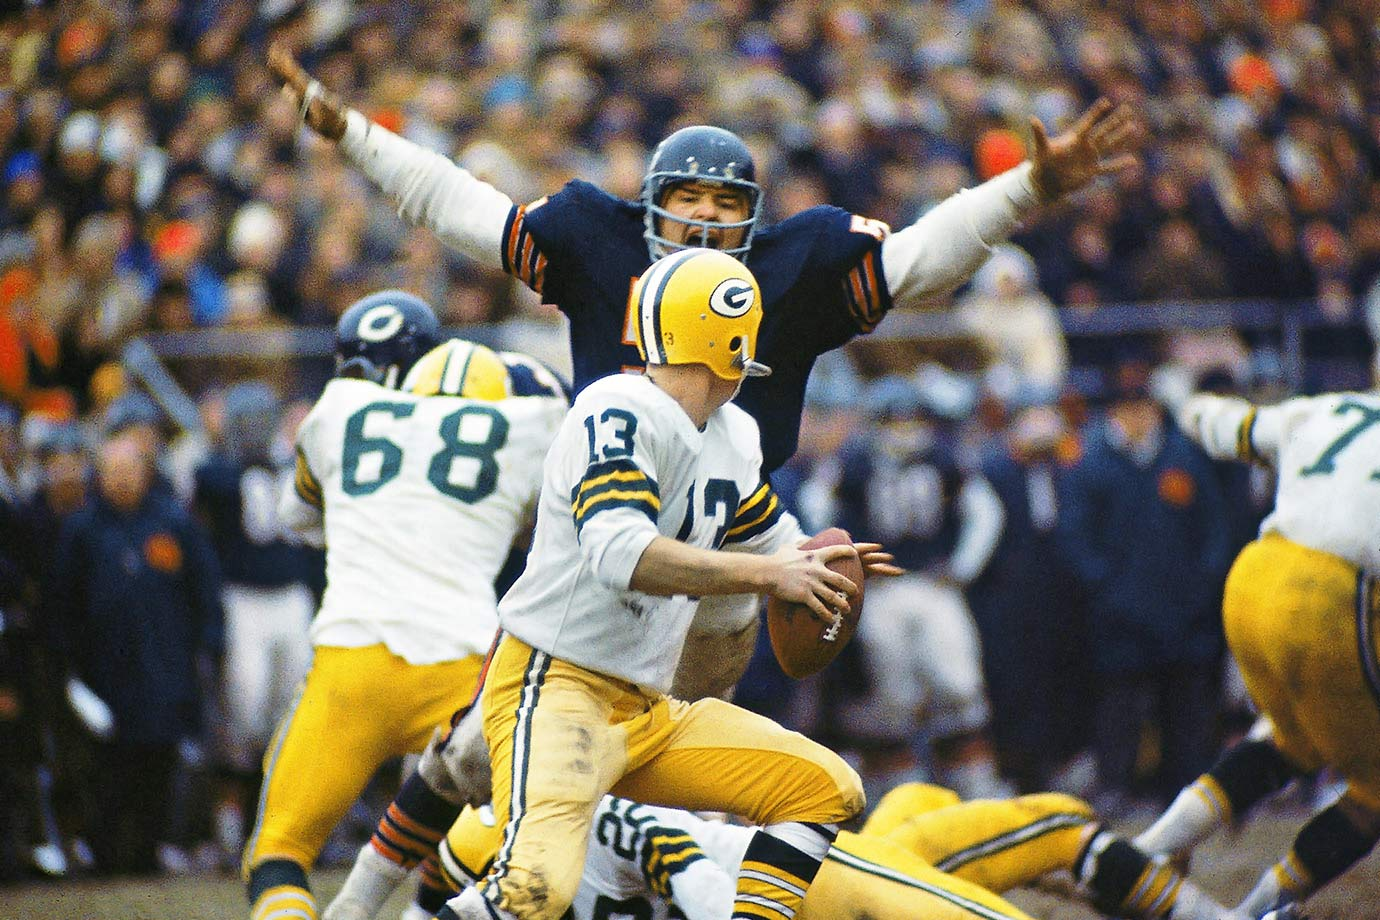 Dec. 1968 — Chicago Bears vs. Green Bay Packers